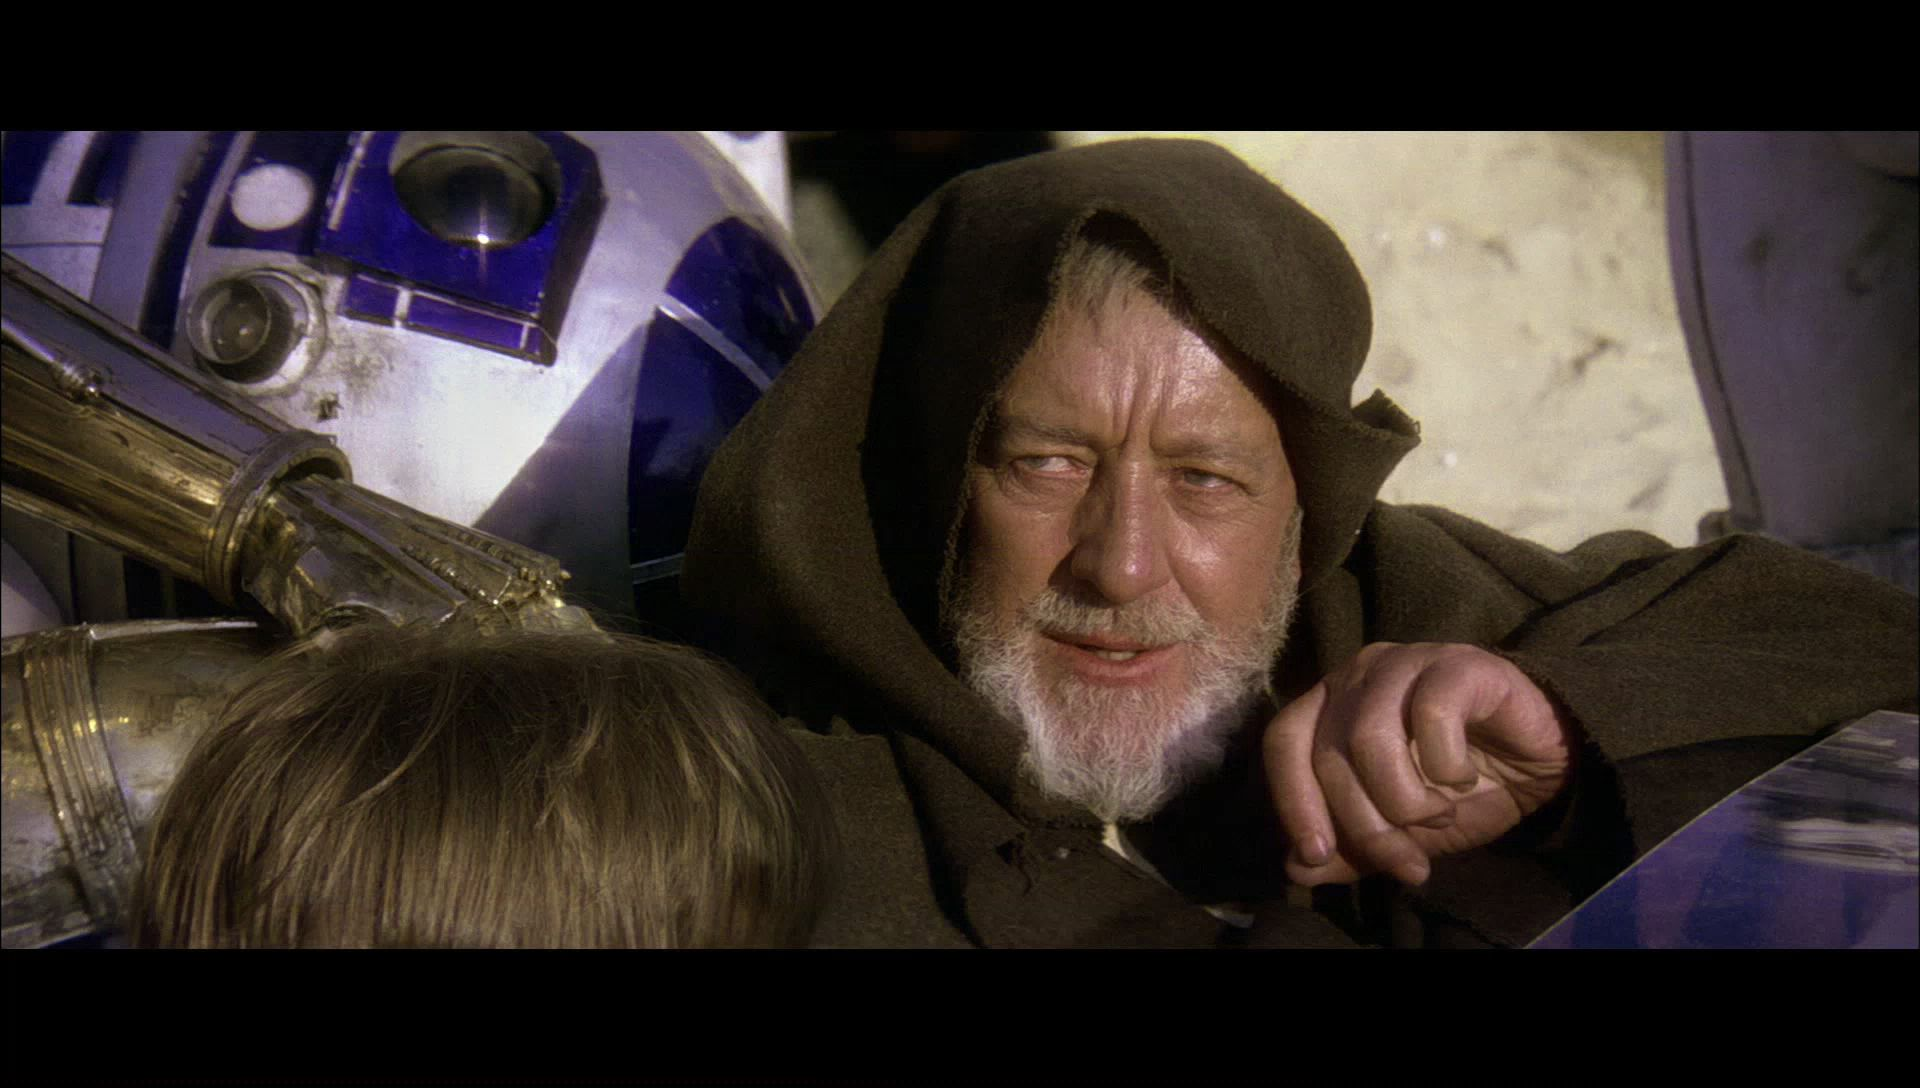 Ben Kenobi.jpg (1920×1088) Mind reading tricks, Crossfit